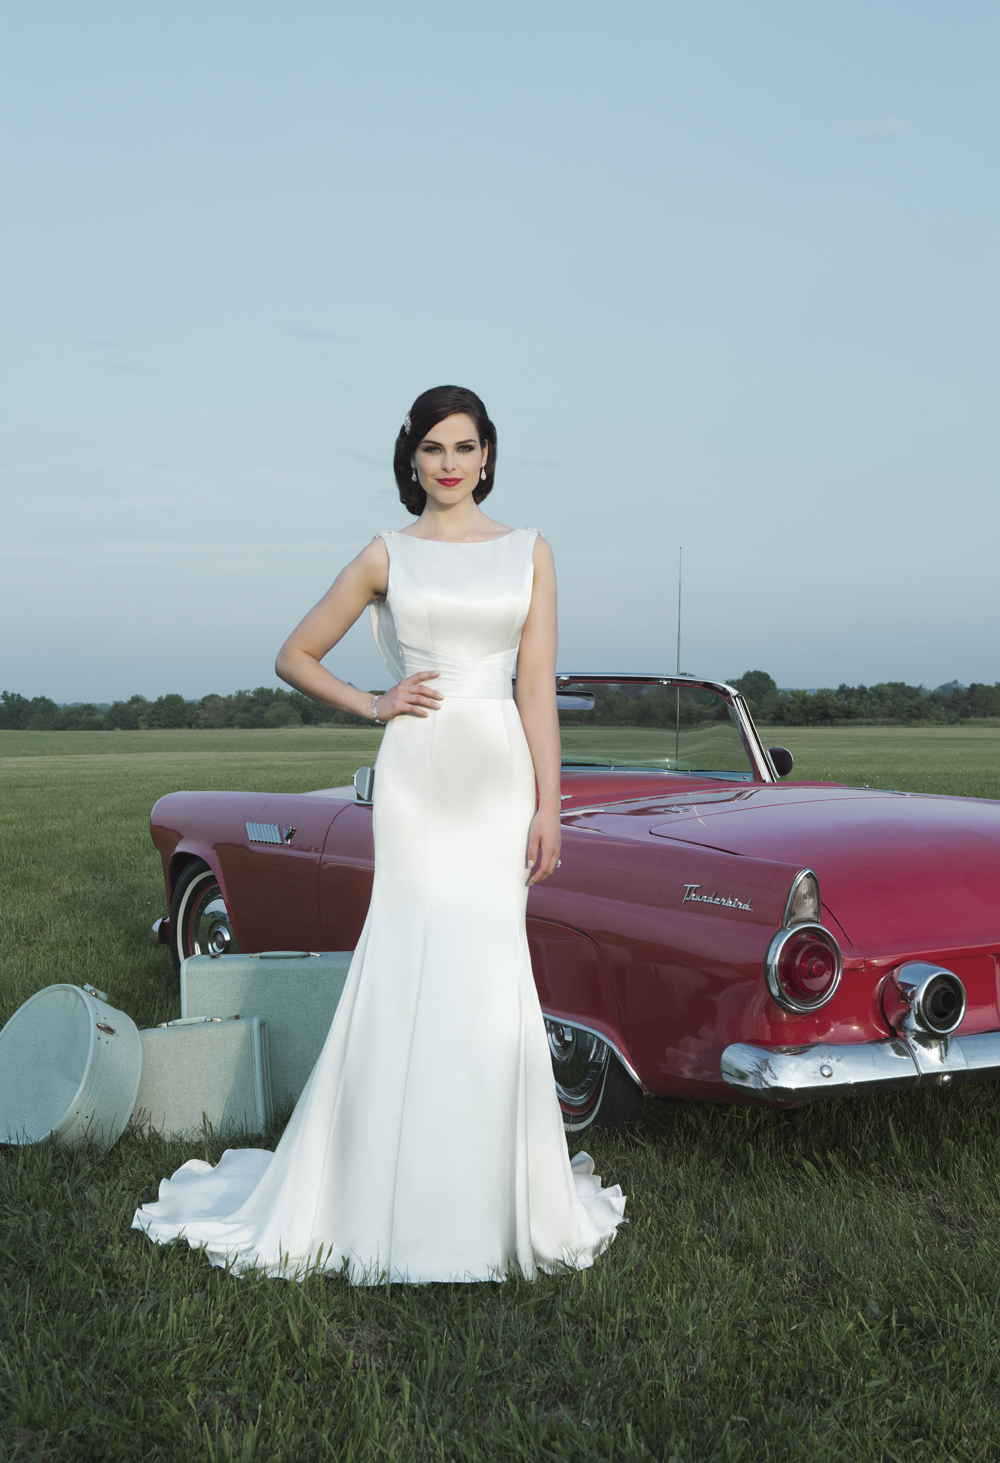 Wedding Dresses from Justin Alexander in 2014 | Lilguy Weddings